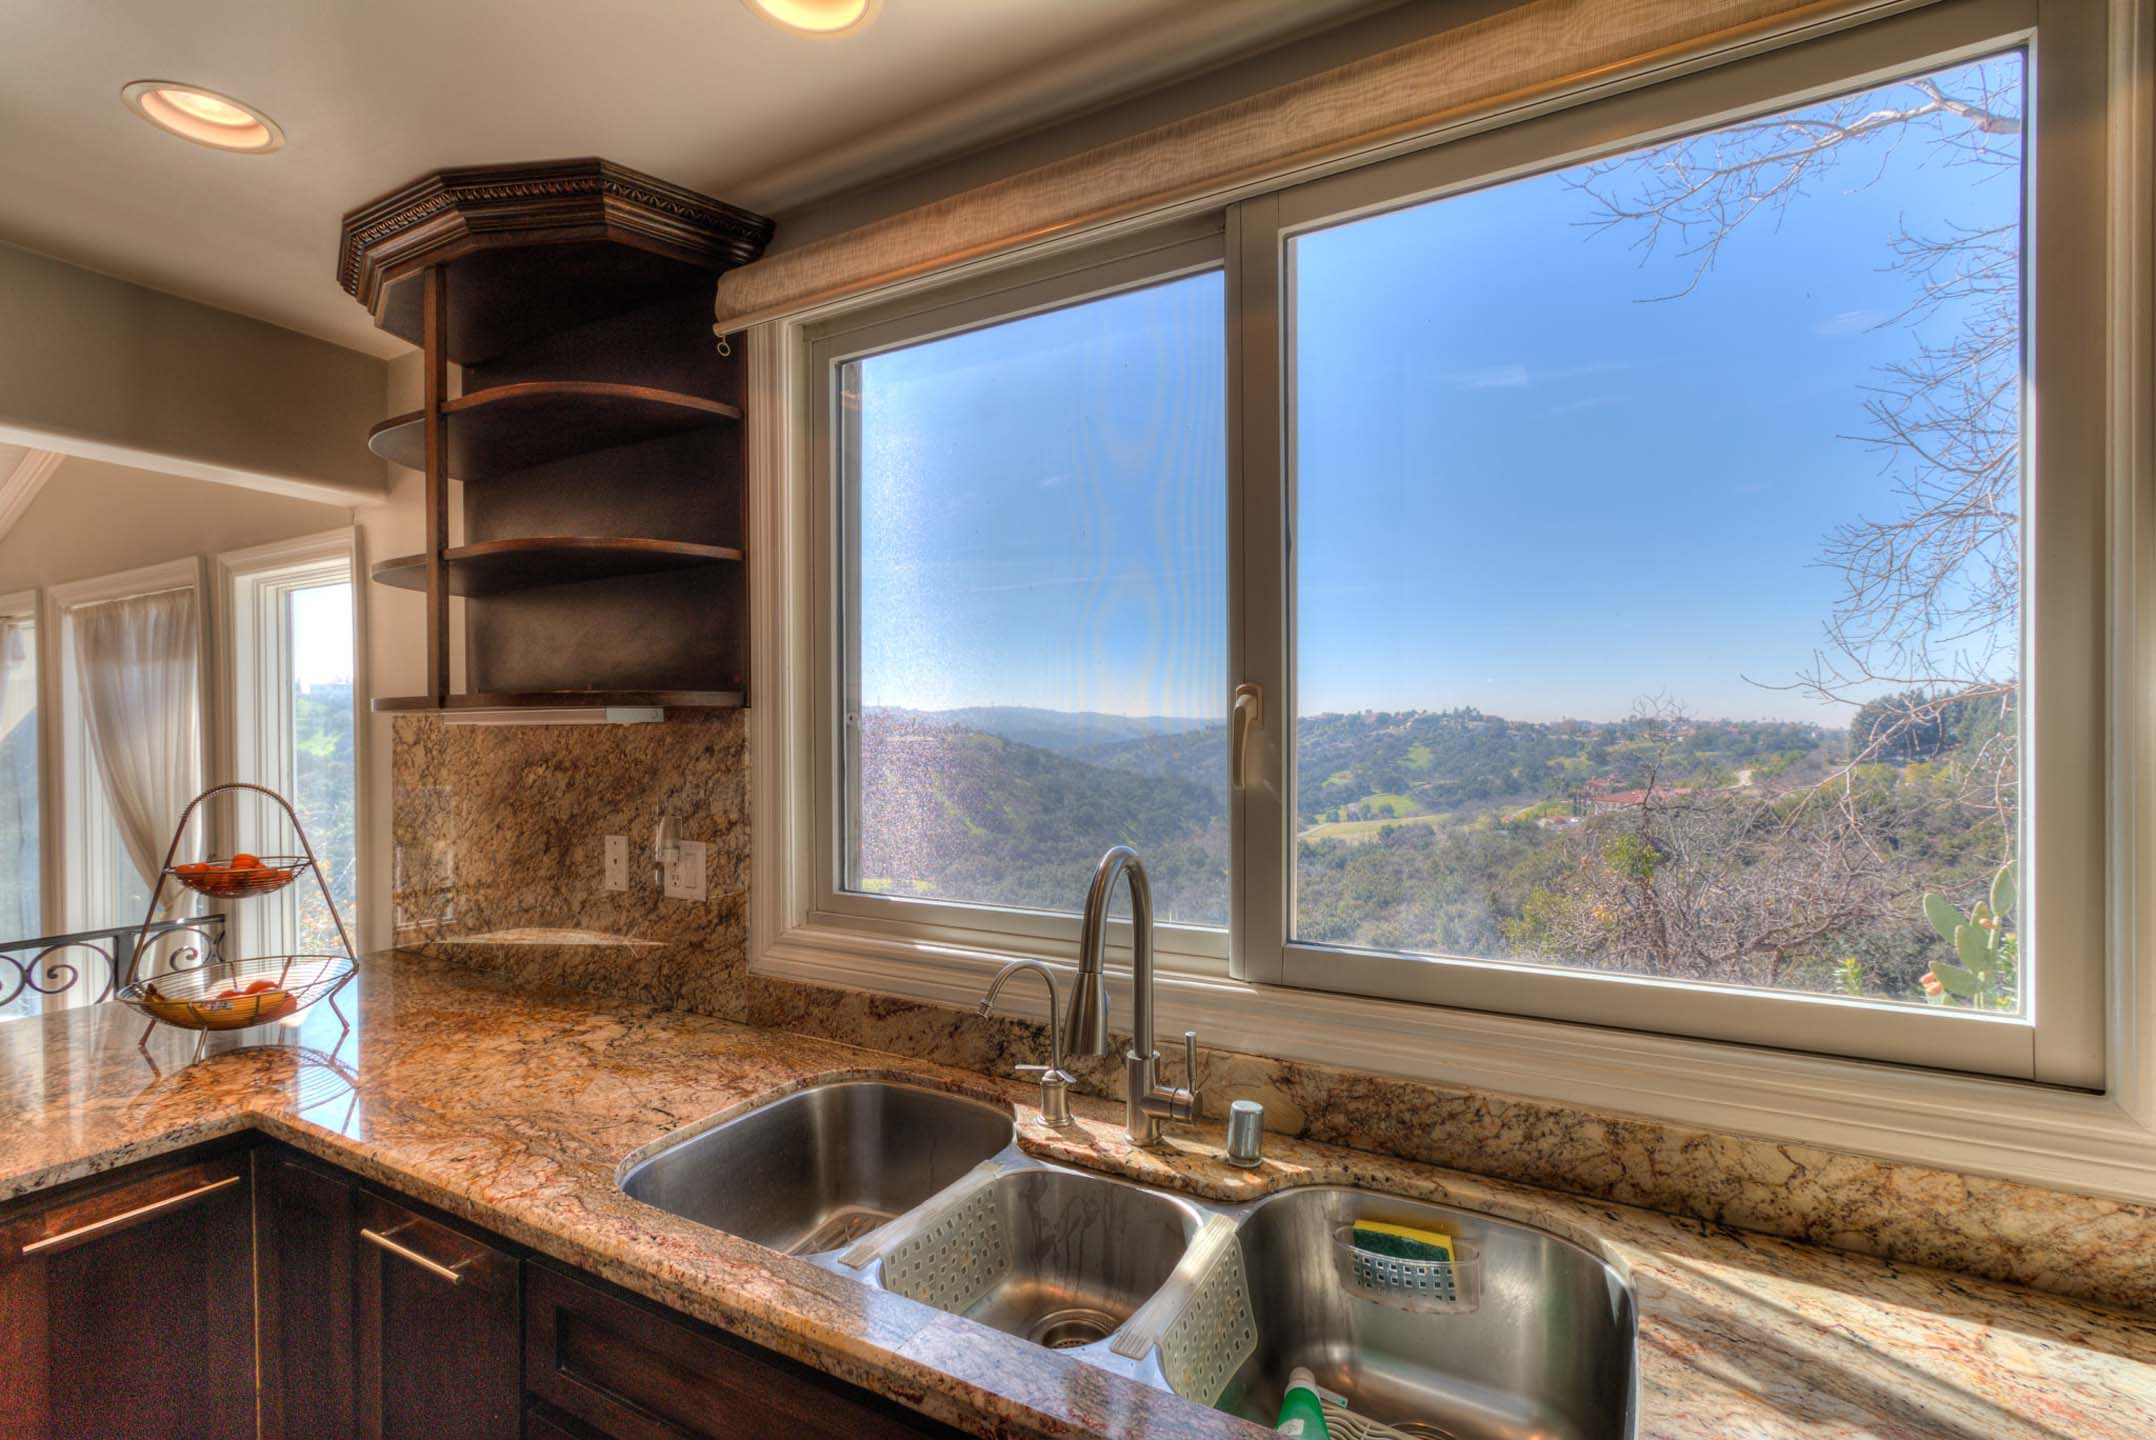 CountryQueen Real Estate - 2150 Rusty Spur Rd., Diamond Bar CA 91765